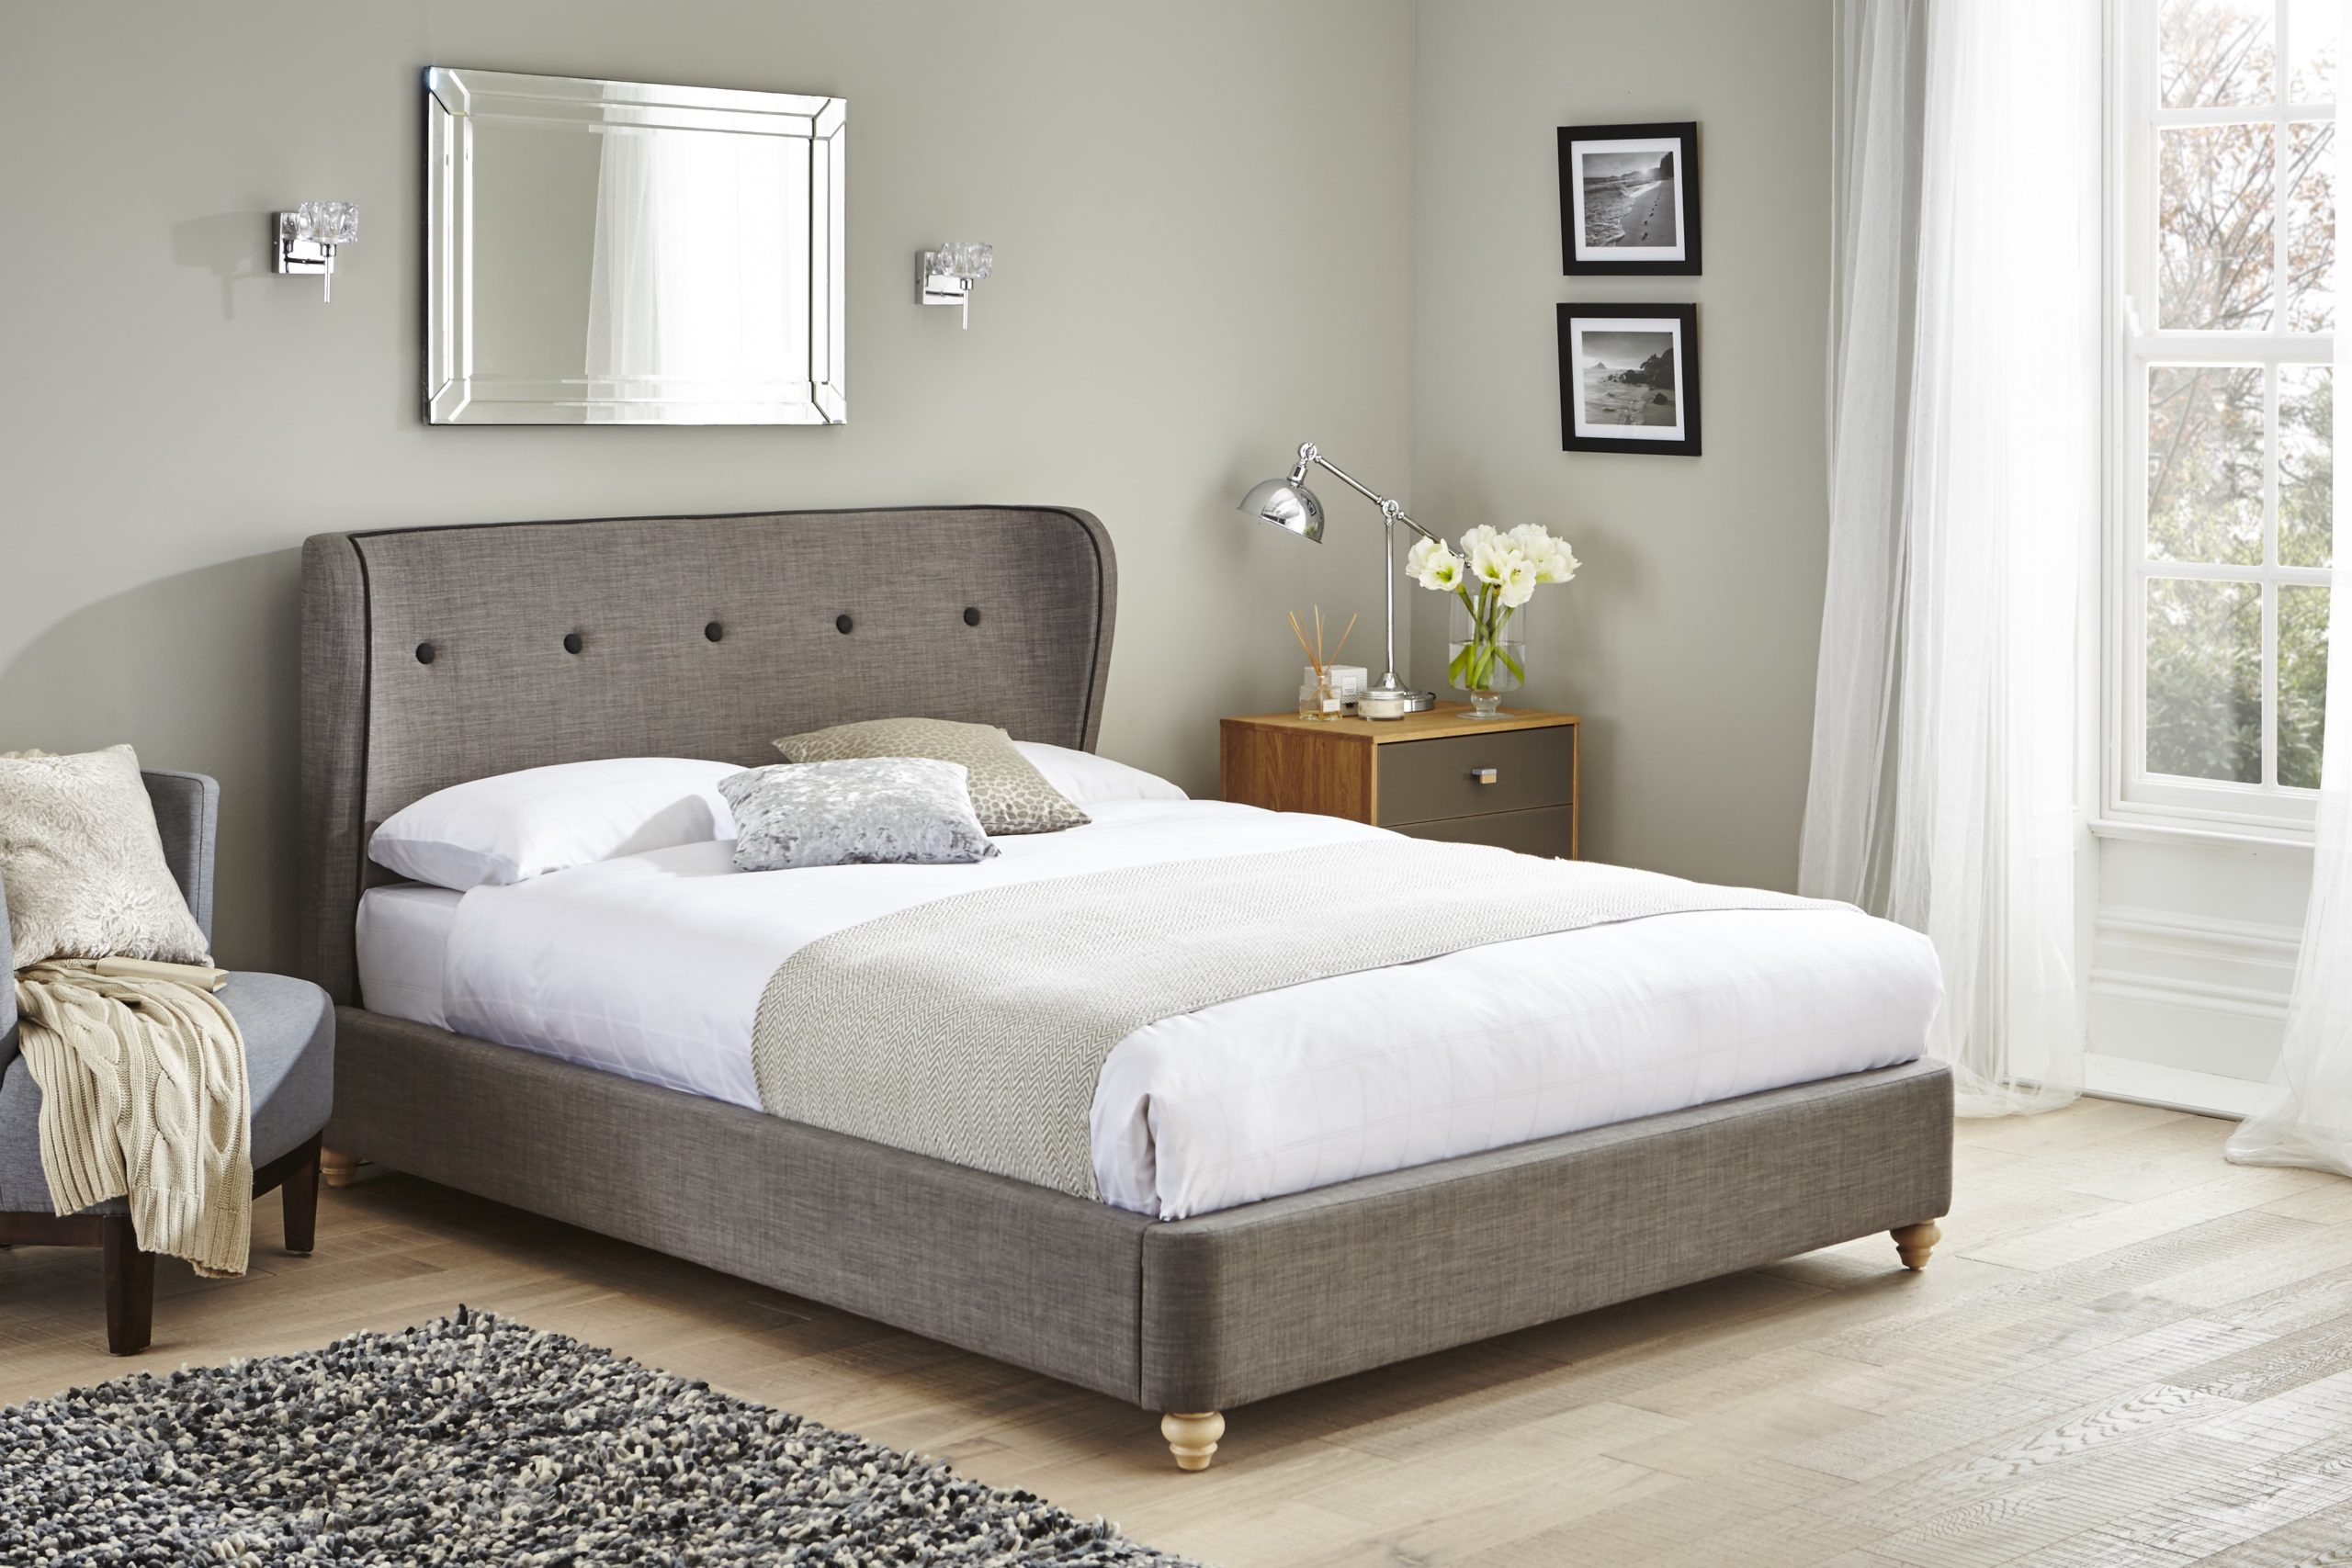 The Perfect Made Bed